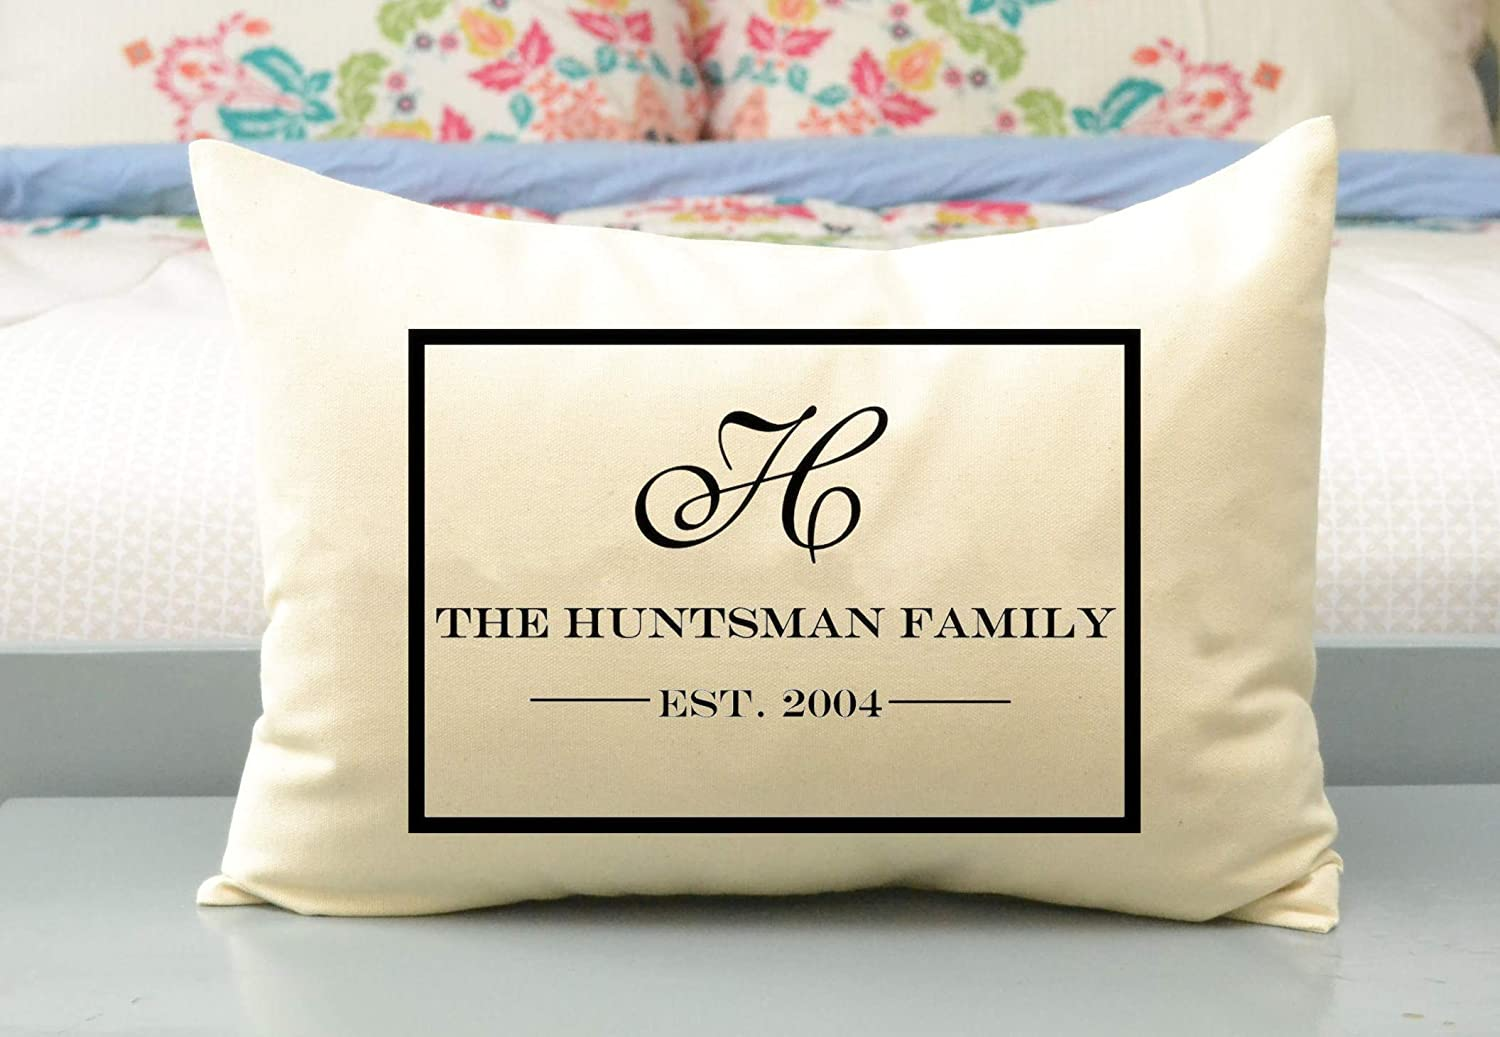 B015TBLK9E Personalized Couples Pillow and Family Name Pillow with Large Monogram and Established Date Cotton Anniversary 2nd Anniversary Gift Huntsman 71IQR96506L